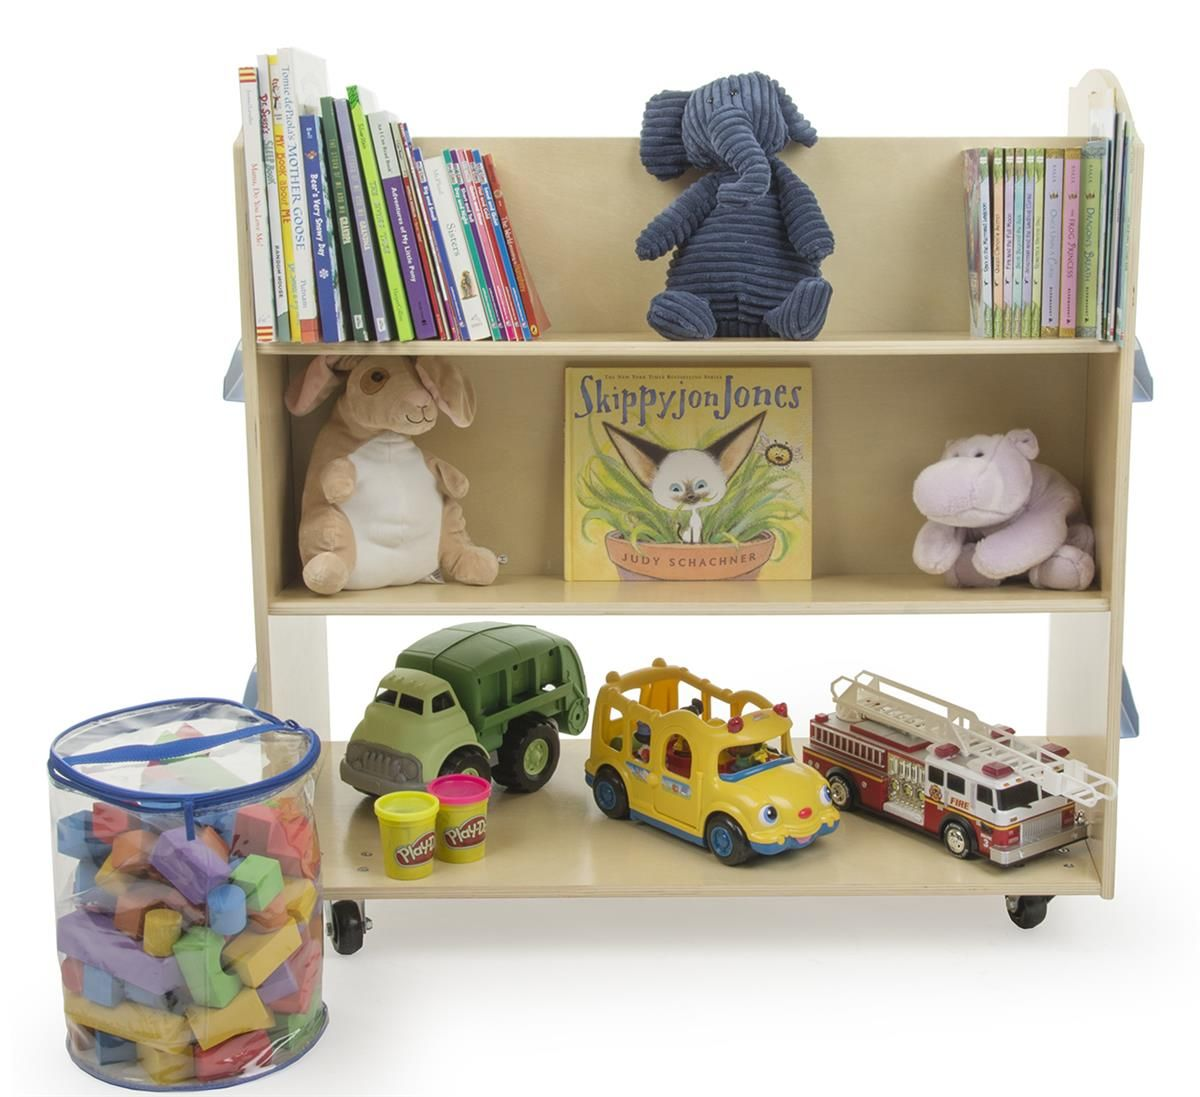 3 Tiered Childrens Book Cart Display For Floor Double Sided Wood